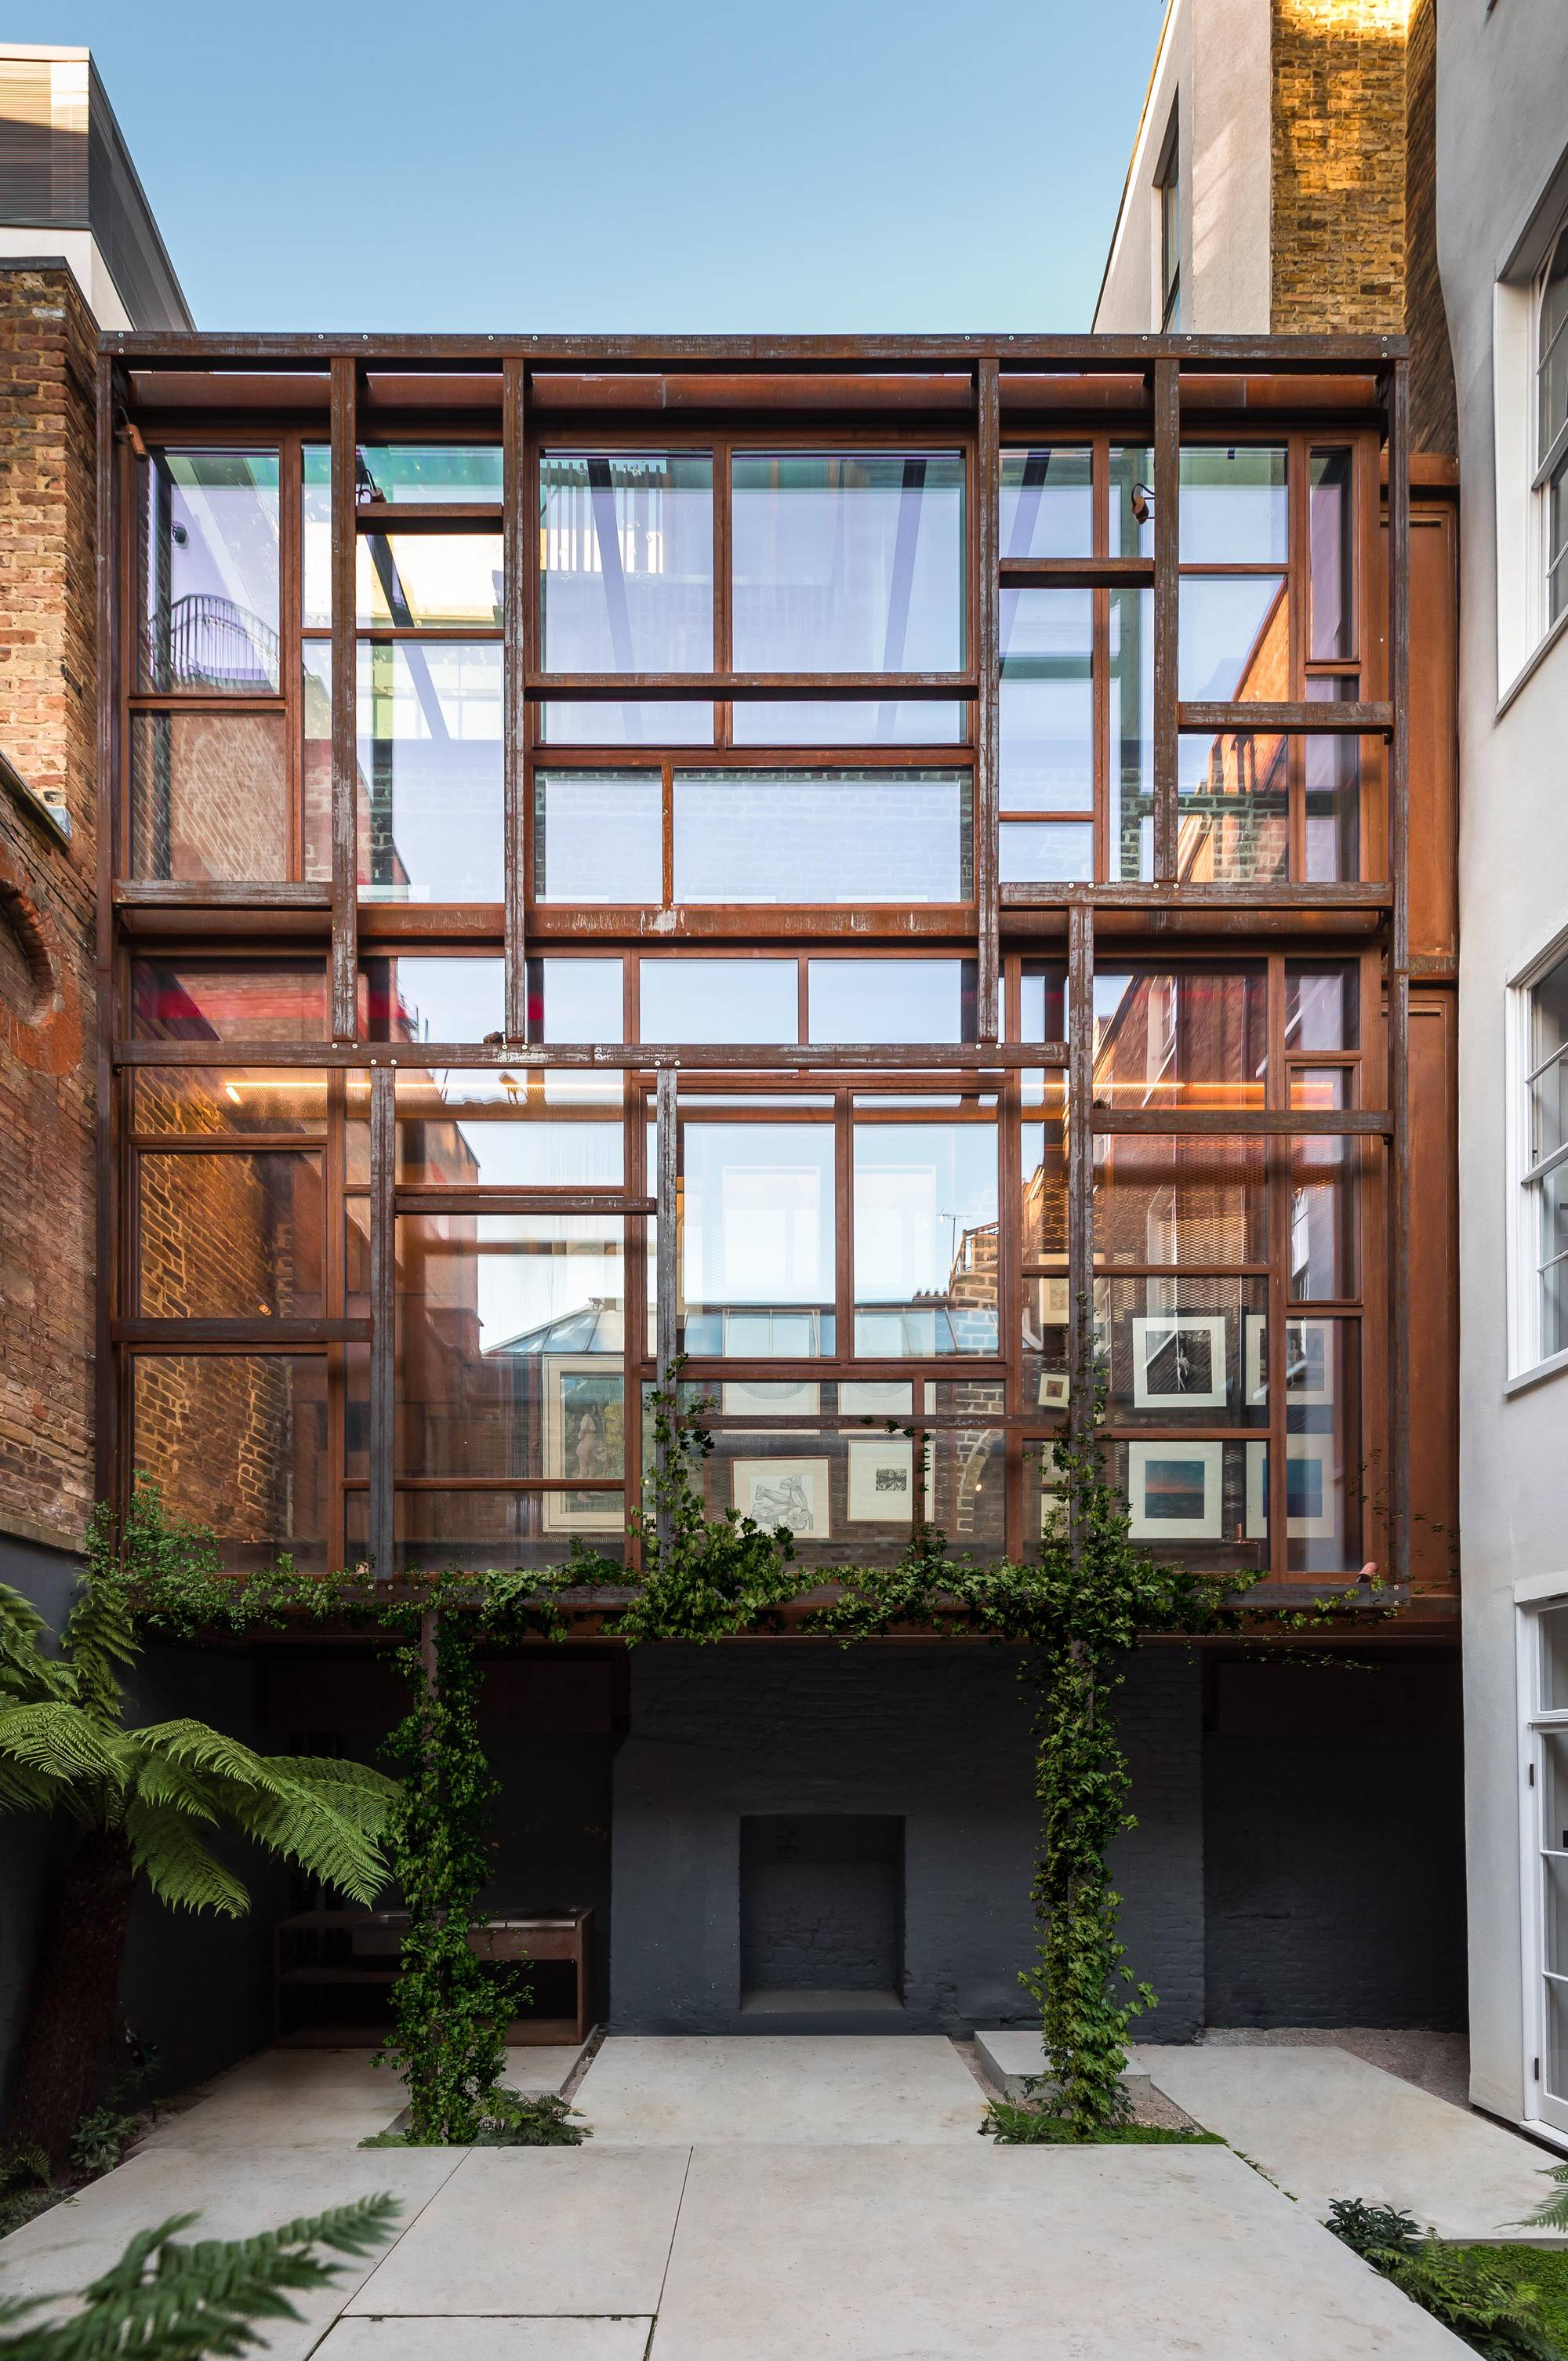 Gallery: The Layered Gallery / Gianni Botsford Architects